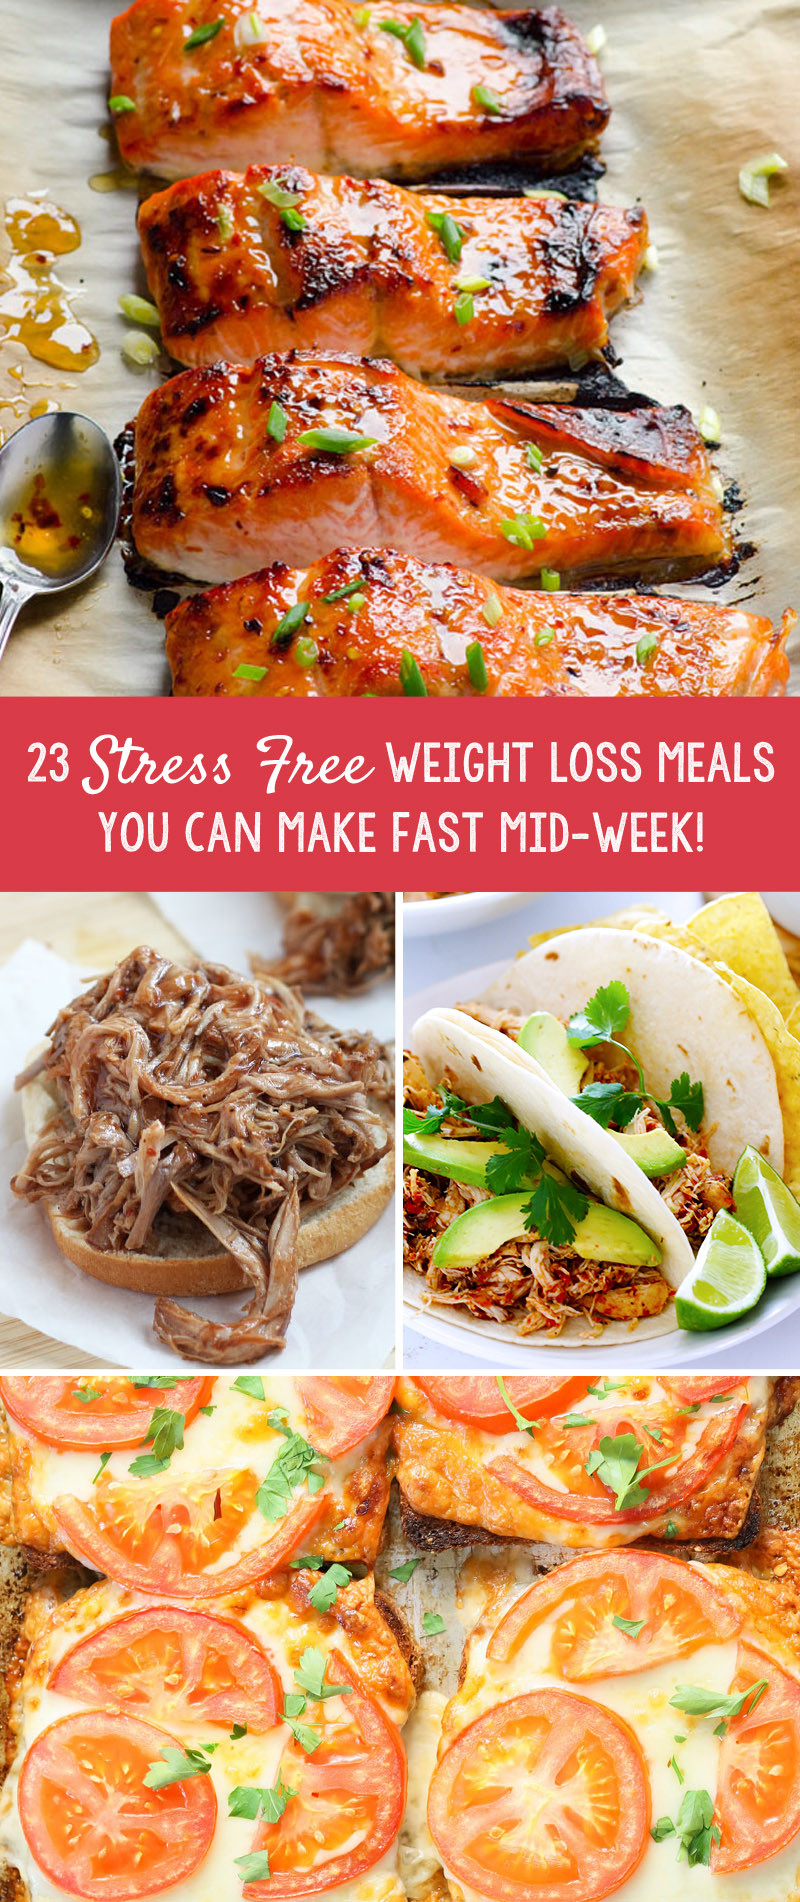 Weight Loss Dinner  23 Stress Free Weight Loss Meals You Can Make Fast Mid Week